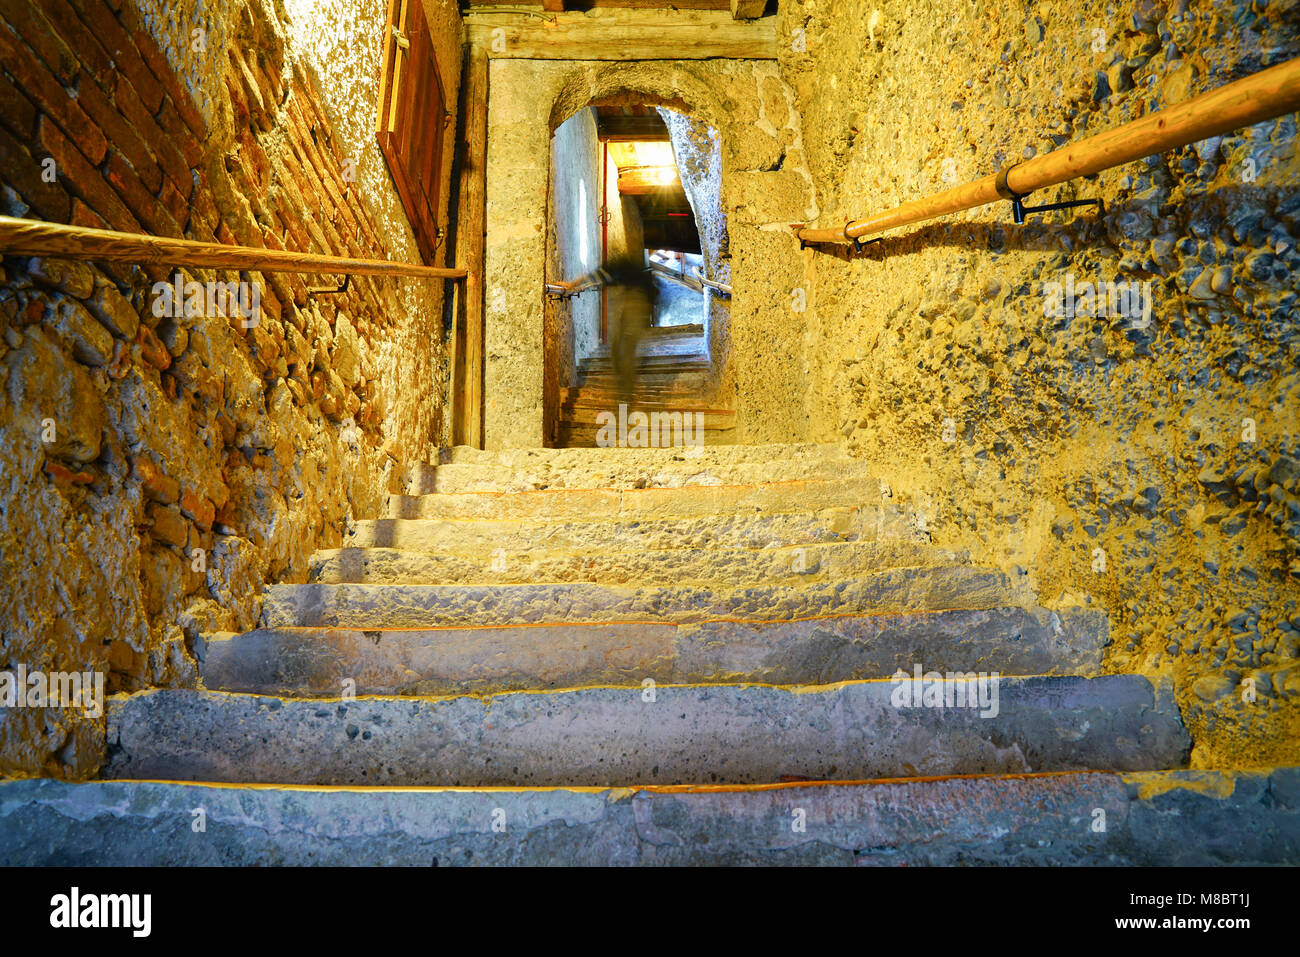 Stone Handrails Stock Photos & Stone Handrails Stock Images - Alamy